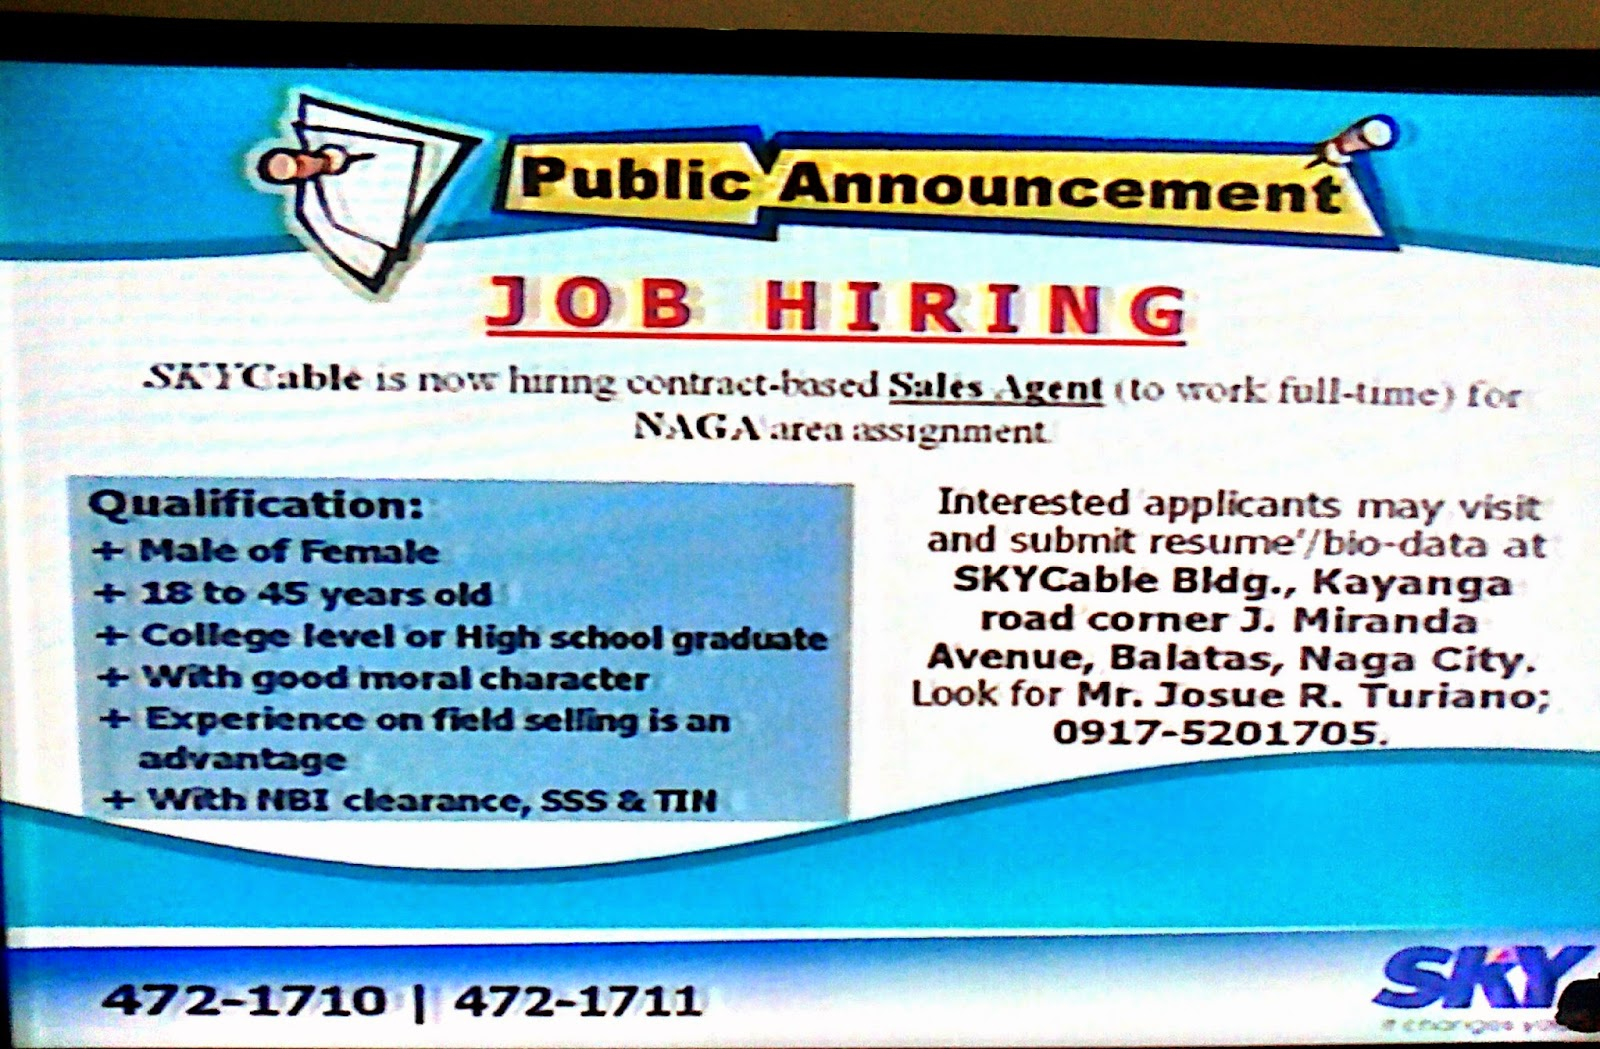 JOB HIRING; SKYCABLE is now hiring contract-based Sales Agent (to work full-time) for NAGA area assignment; Qualification: - Male; - 18 to 35 years old; - College level or High school graduate; - With good moral character; - Experience on field selling is an advantage; - With NBI clearance, SSS & TIN